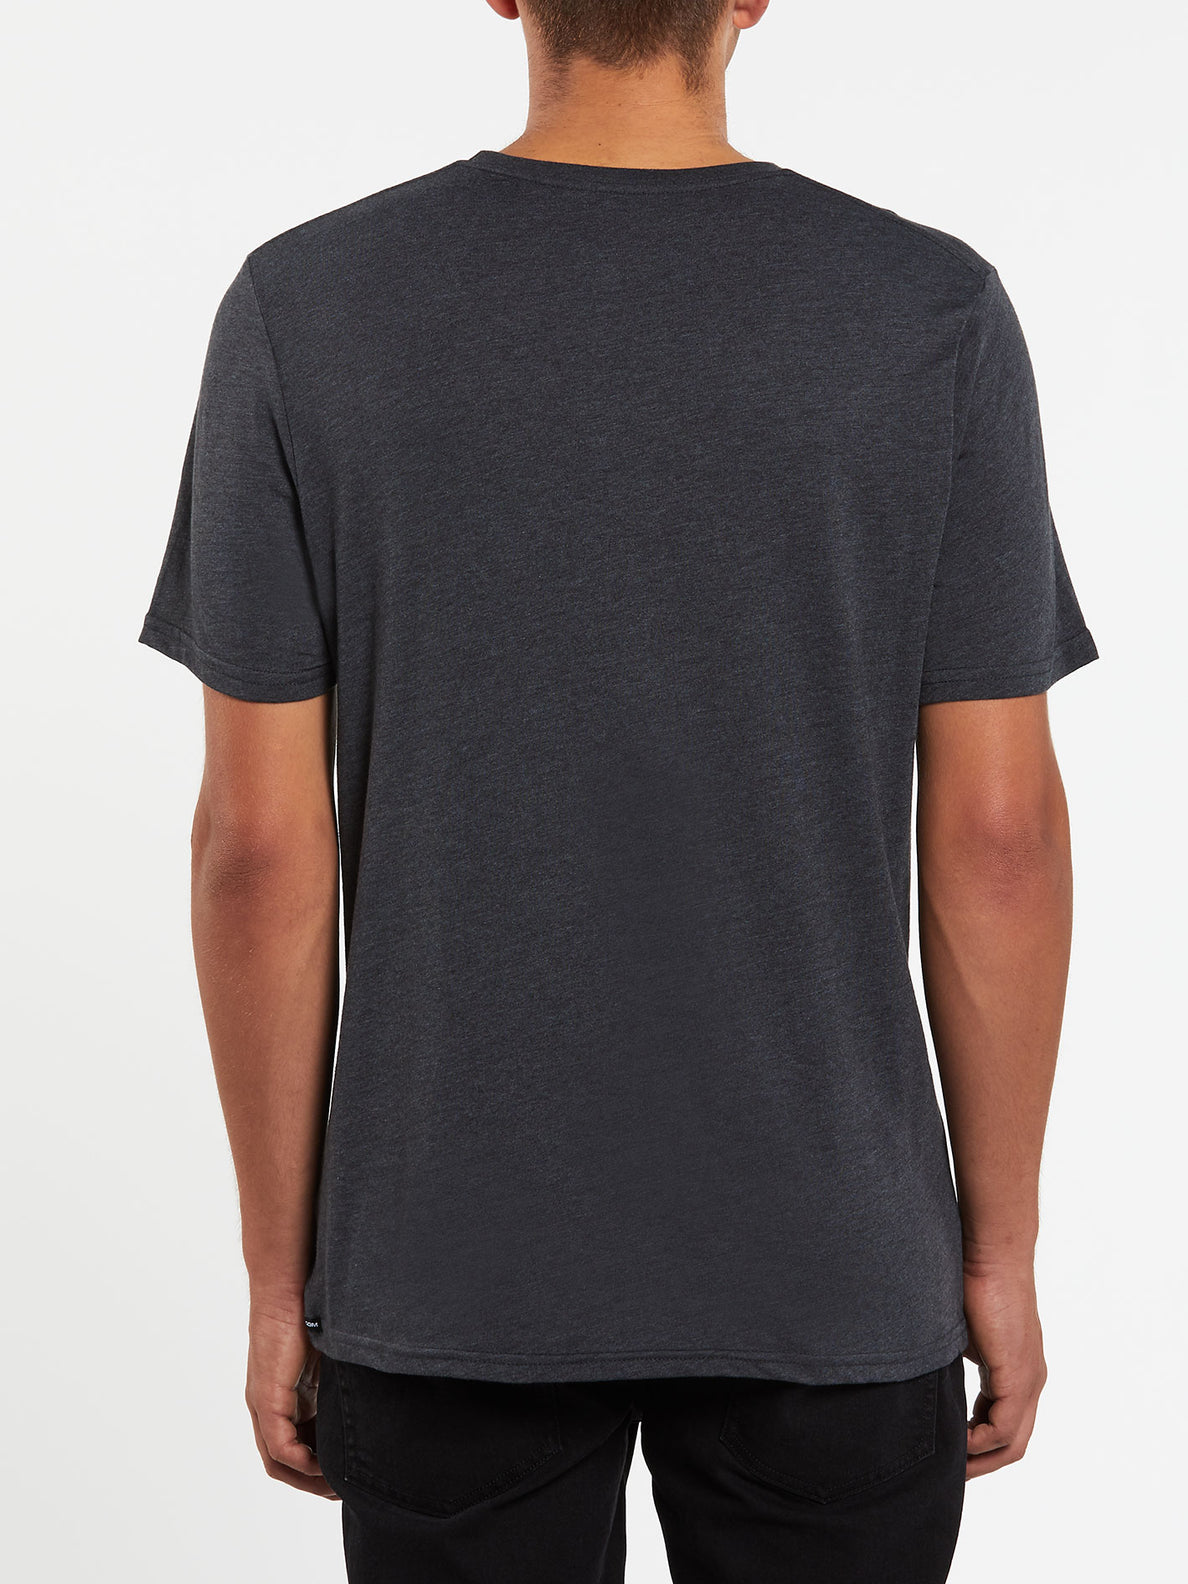 Insizer Short Sleeve Tee - Heather Black (A5732003_HBK) [B]